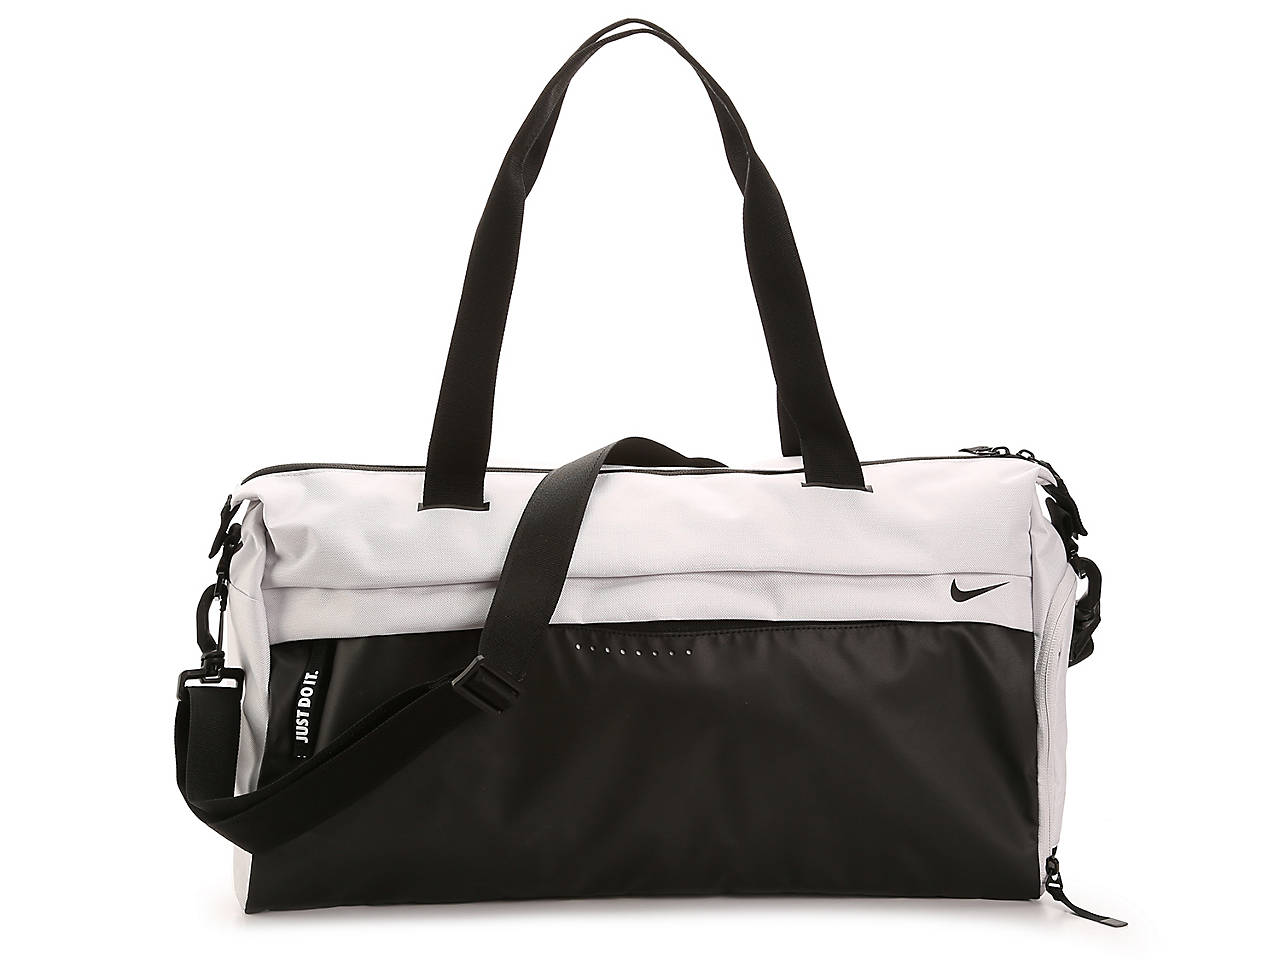 Nike Radiate Club Gym Bag Women s Handbags   Accessories  4ef0975553